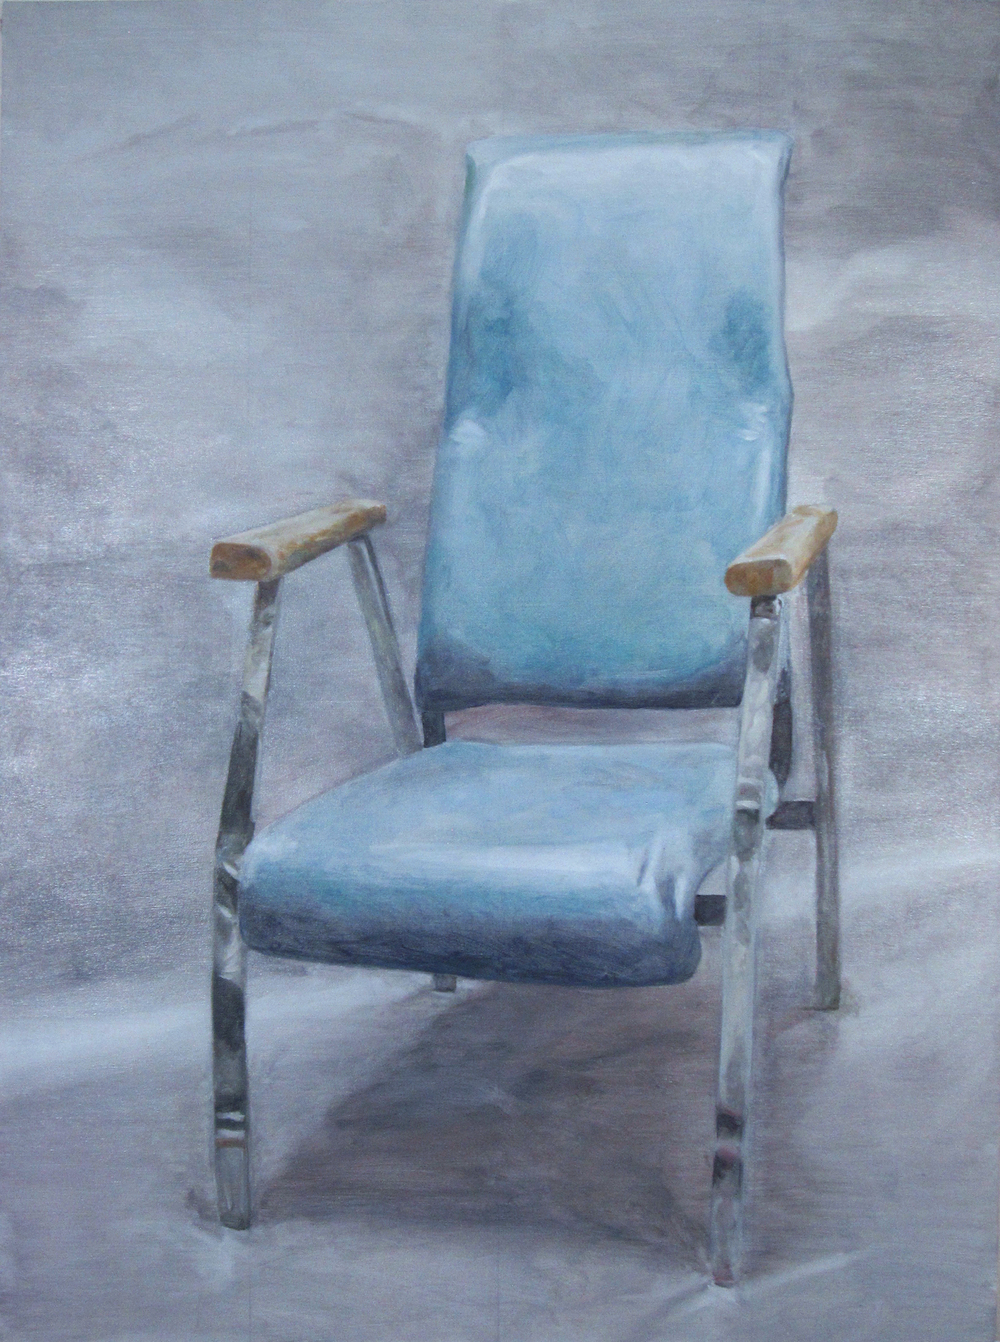 prop hospital chair no. 1 2014 oil on canvas  40 x 30 in.